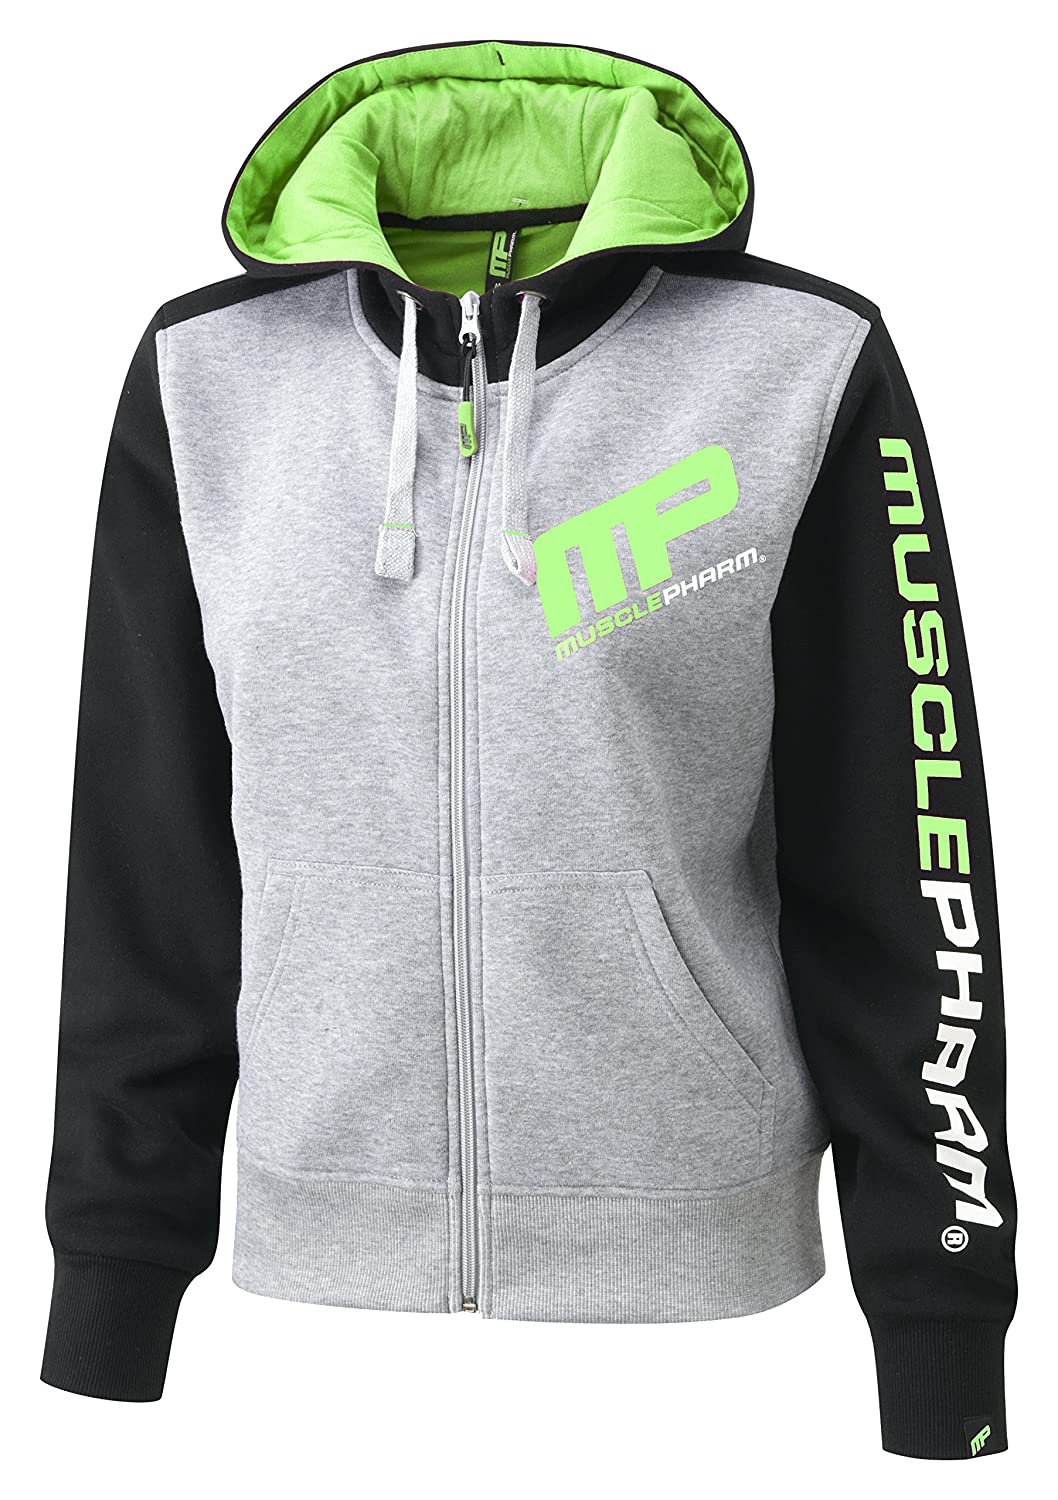 Musclepharm MPLSWT477 - LADIES HOODED TOP - SMALL - H/BLACK/LIME GREEN - De Mujeres Y Cremallera Con Capucha - Heather Gris/Negro/Verde Lima, Pequeño